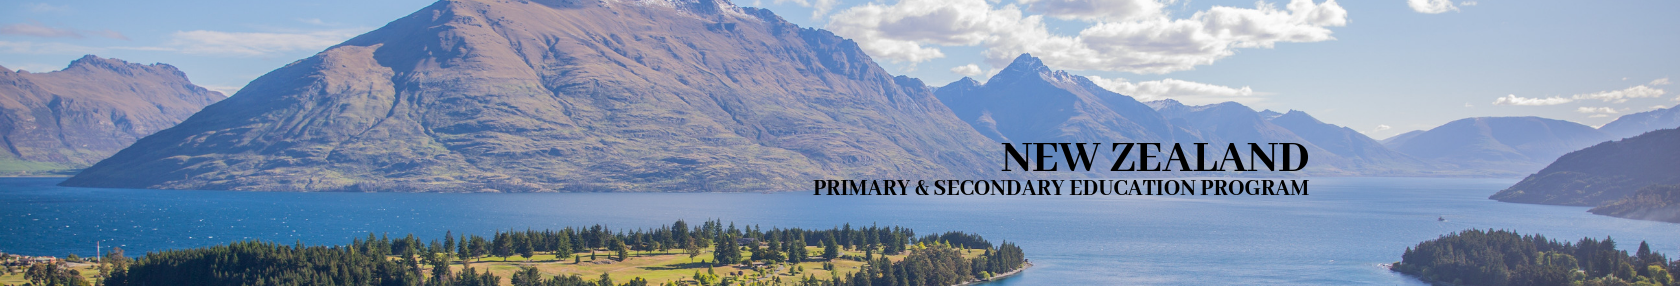 New Zealand, Primary and Secondary